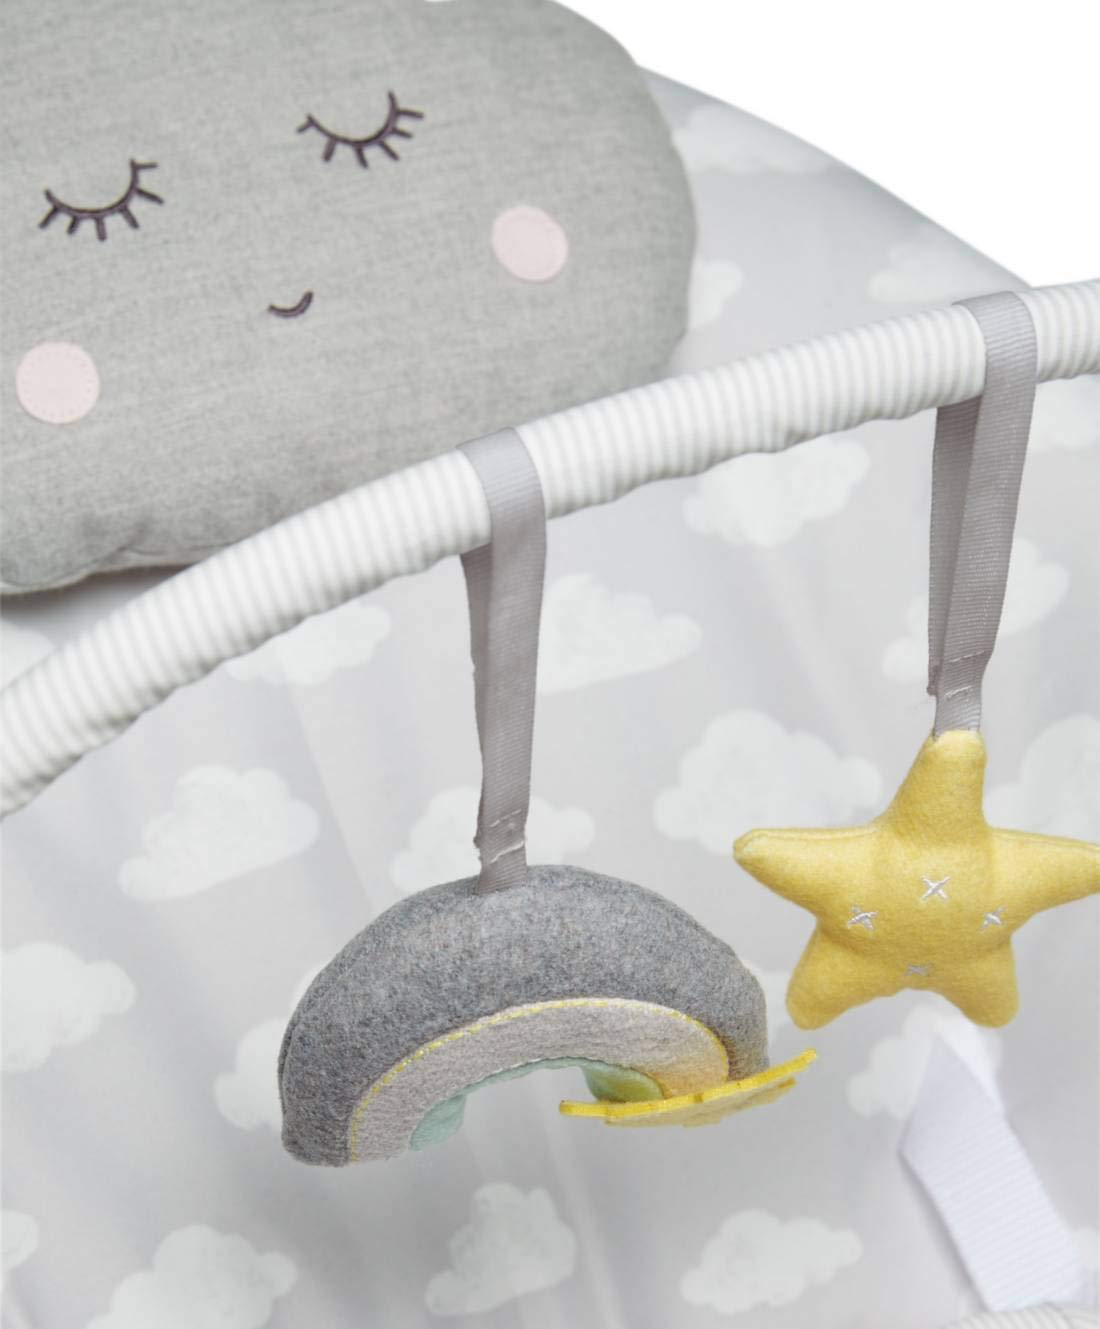 Suitable from 0-6 Months Mamas /& Papas Musical Vibrating Baby Capella Bouncer Cradle Package with 2 Safety Doorstops Cloud Design